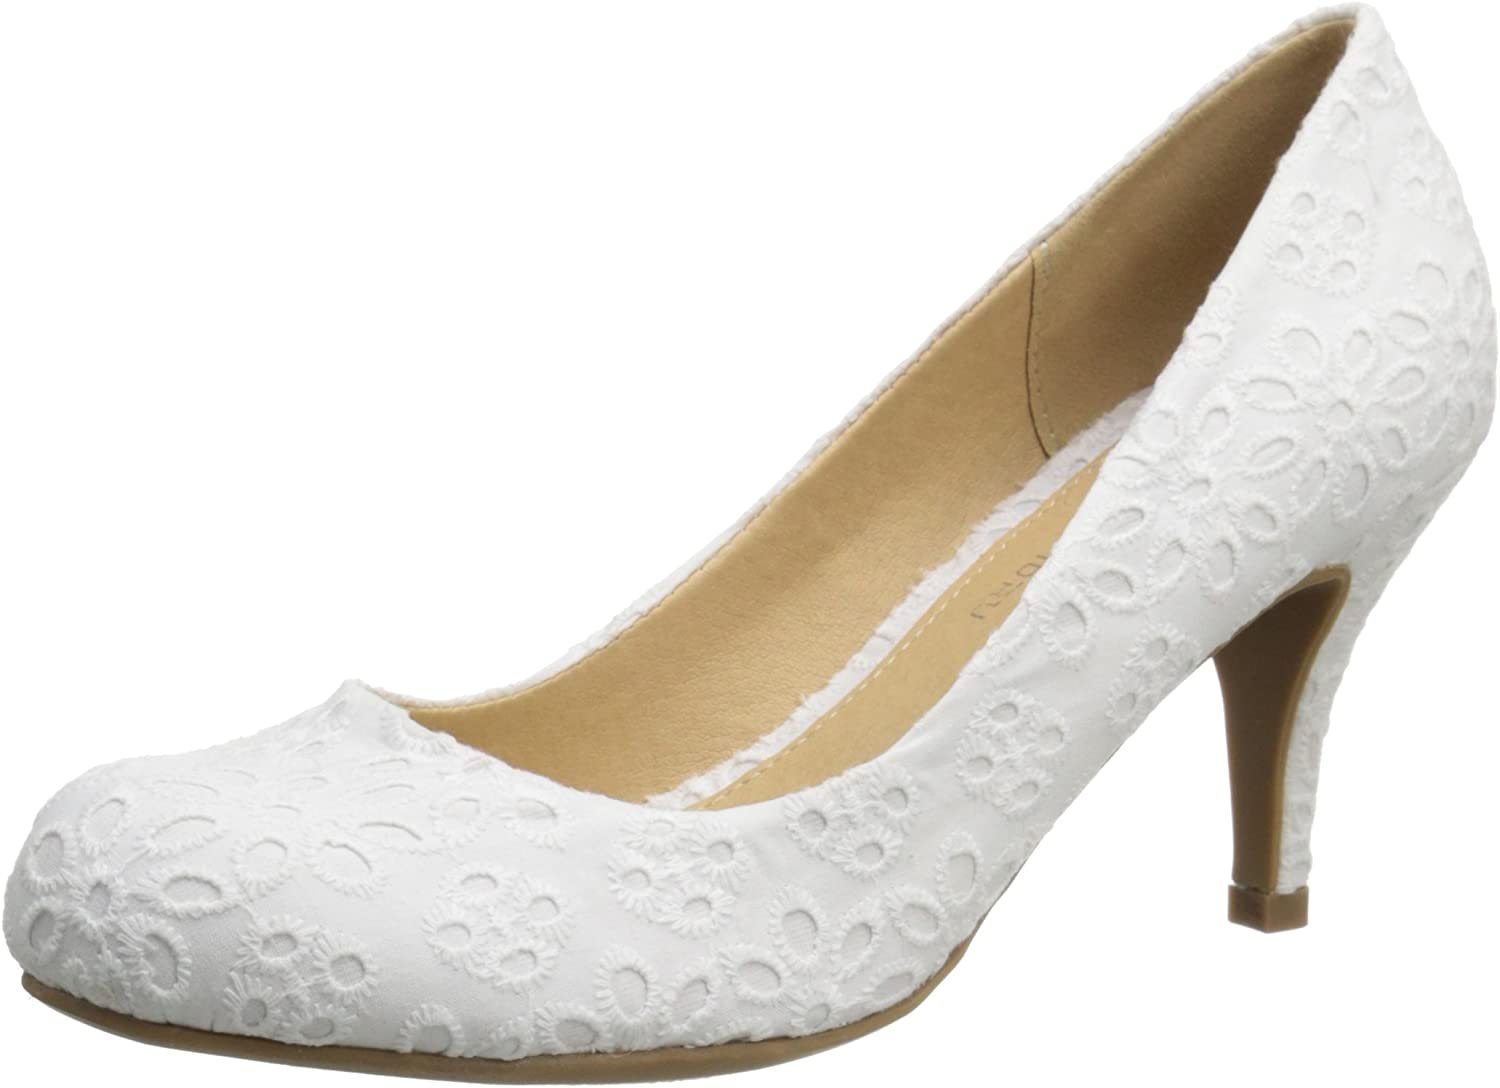 CL by Chinese Laundry Women's Nanette Dress Pump